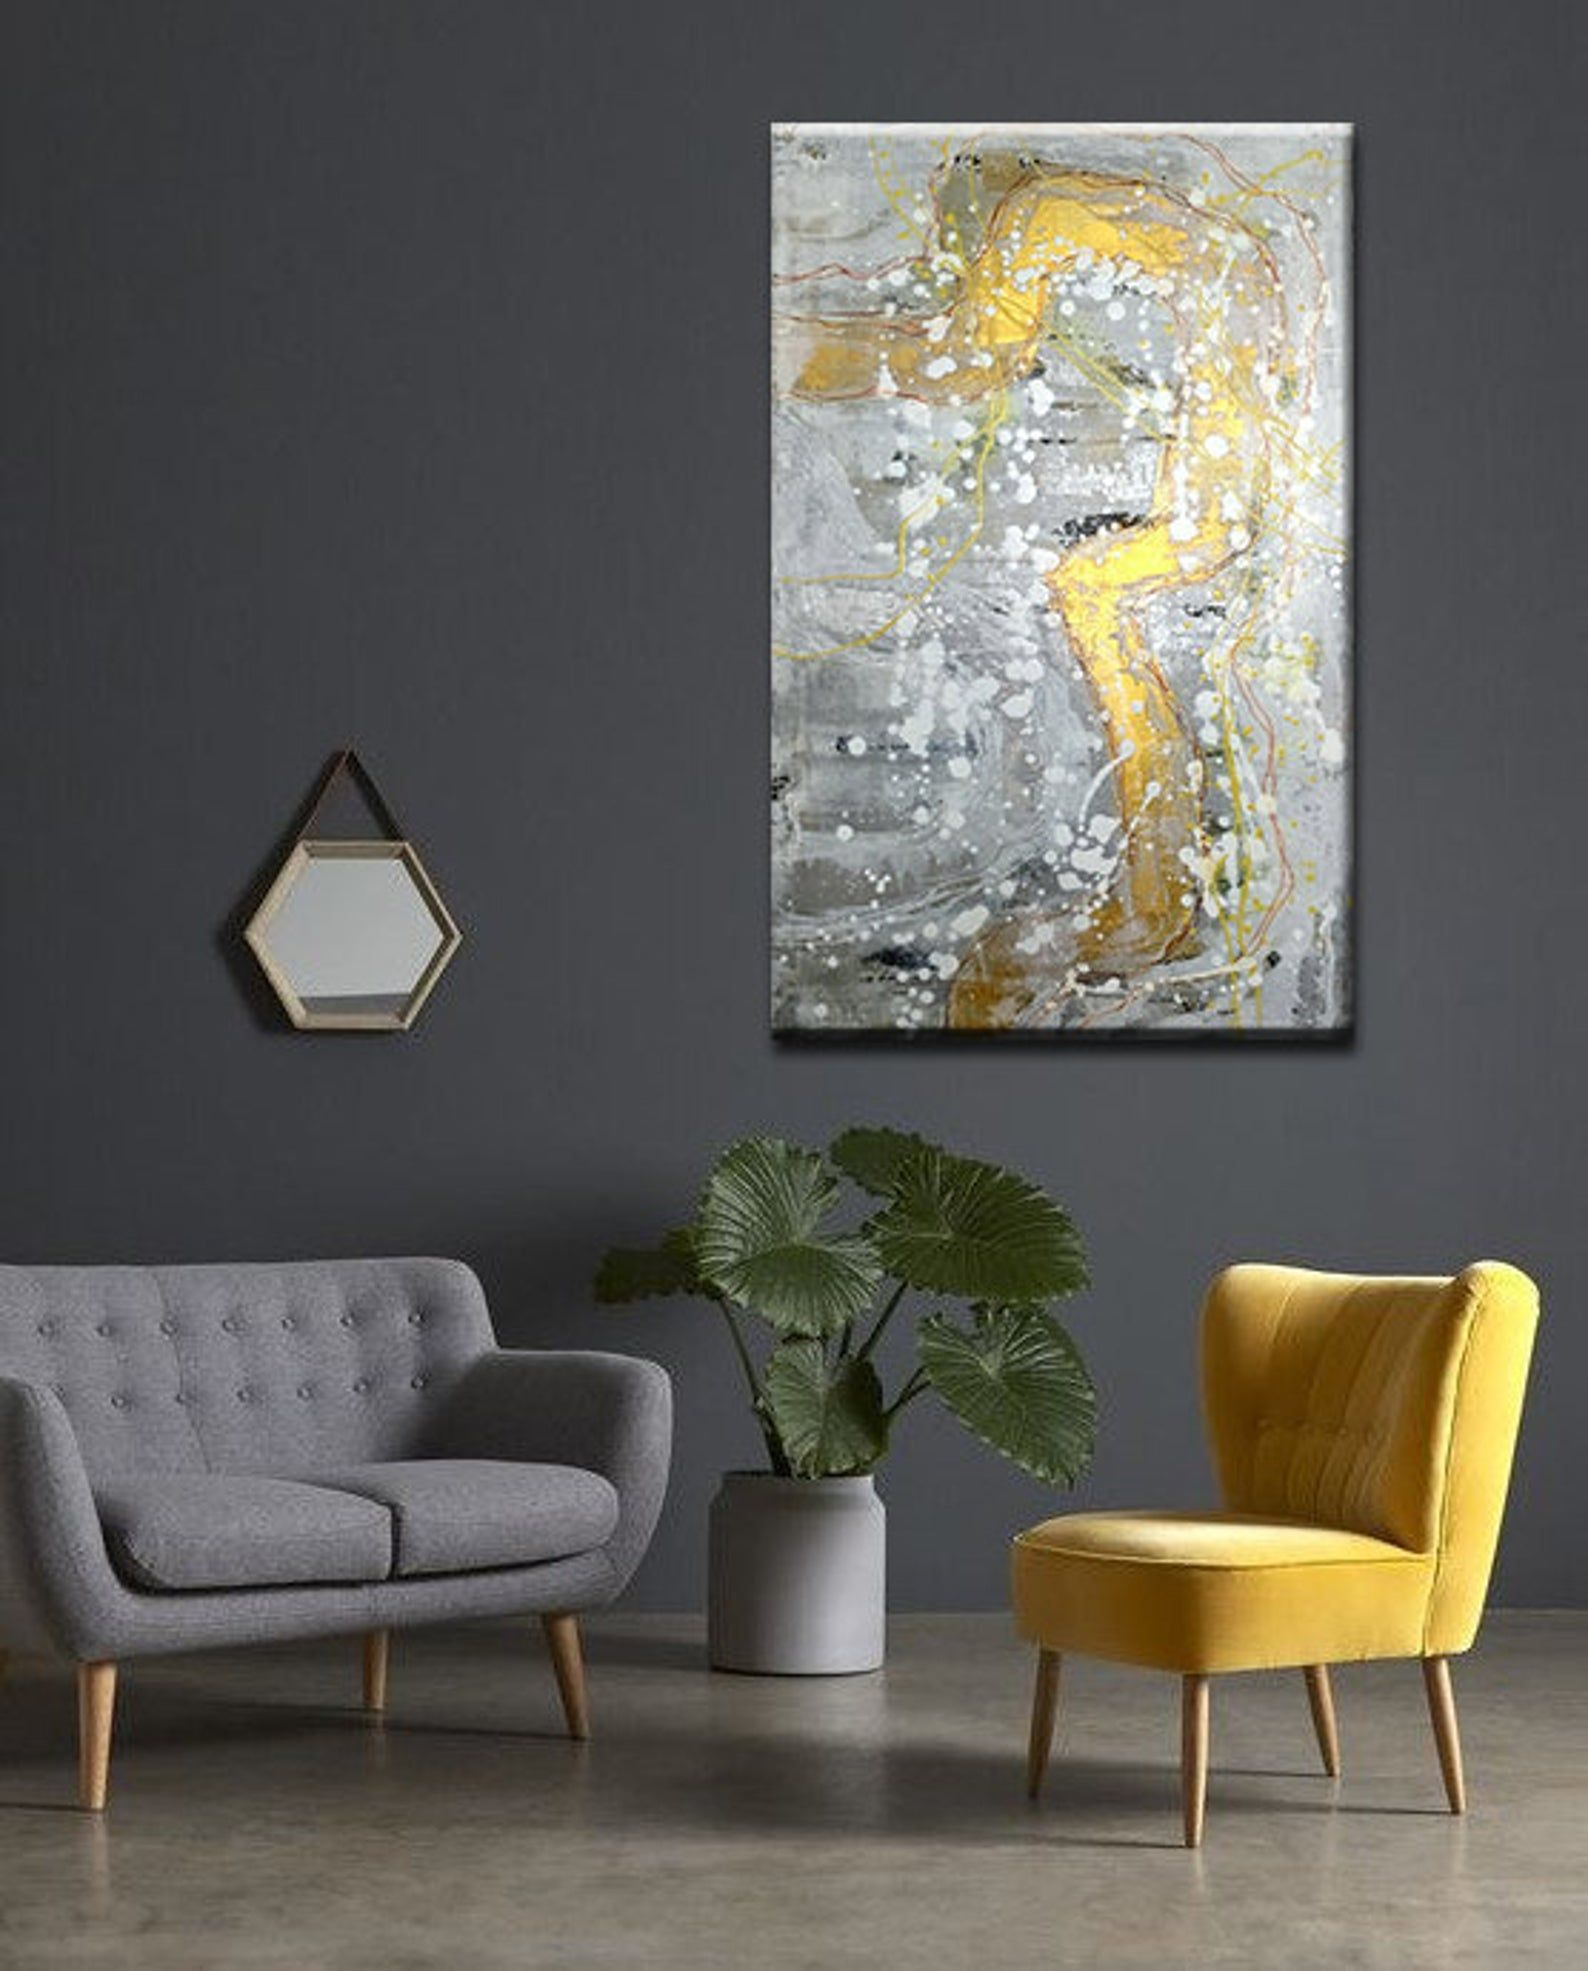 Modern Art On Canvas Original Painting Gray White Gold Silver Etsy In 2020 Apartment Living Room Design Modern Minimalist Living Room Minimalist Living Room #vertical #paintings #for #living #room